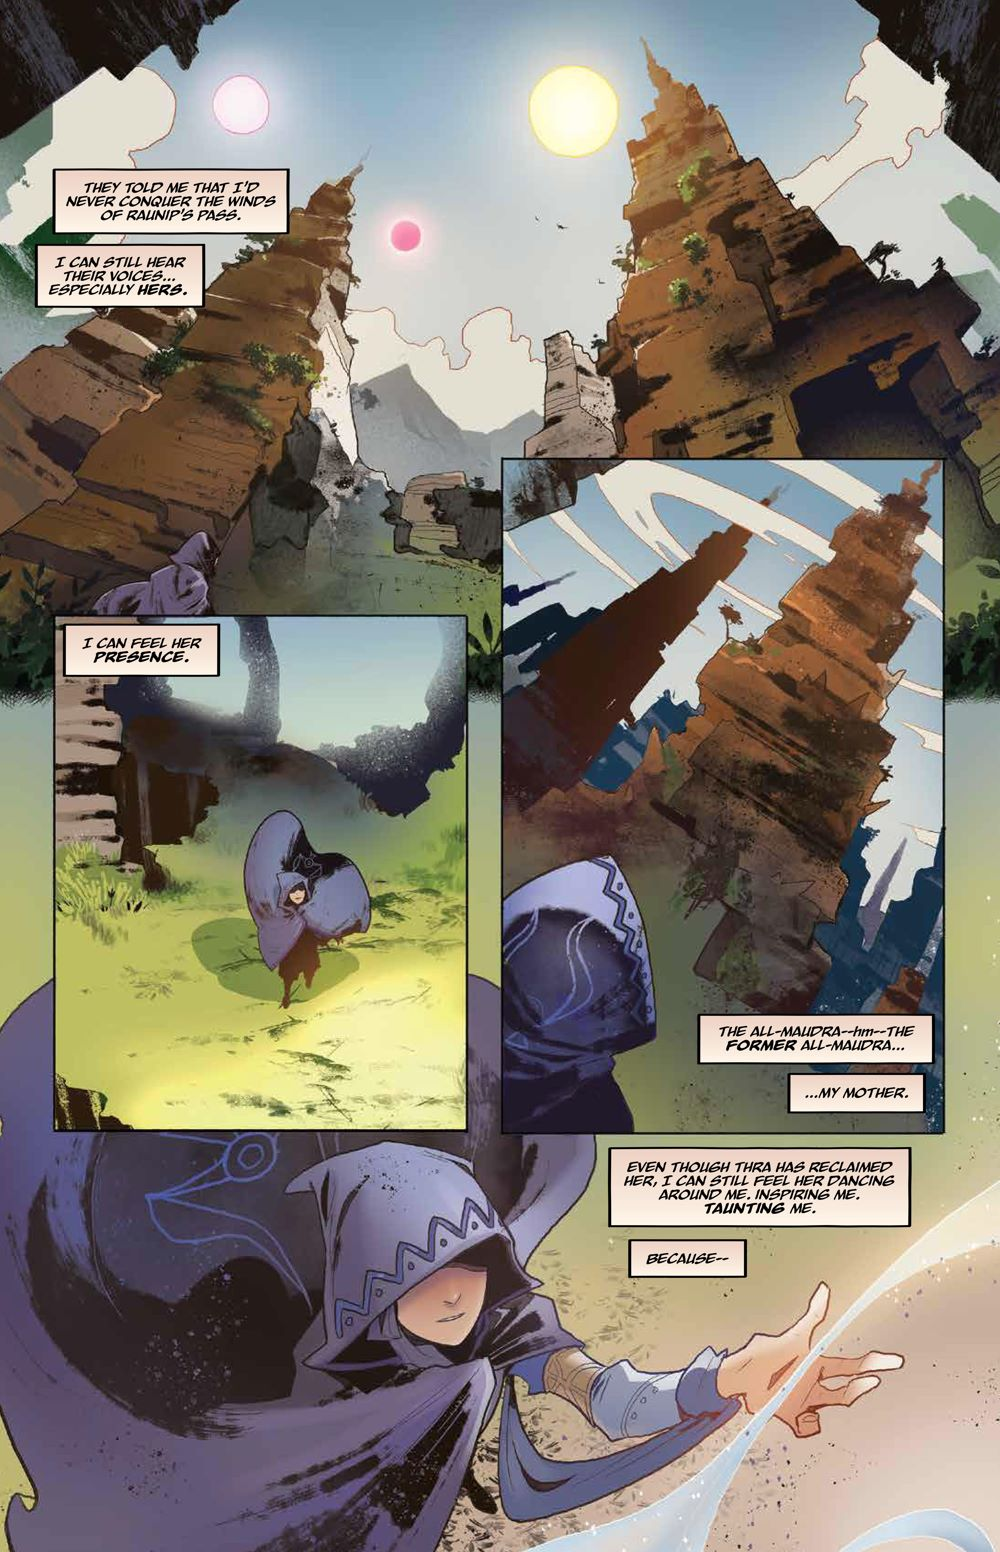 DarkCrystal_AgeResistance_v3_Journey_PRESS_9 ComicList Previews: JIM HENSON'S THE DARK CRYSTAL AGE OF RESISTANCE VOLUME 3 THE JOURNEY INTO THE MONDO LEVIADIN HC